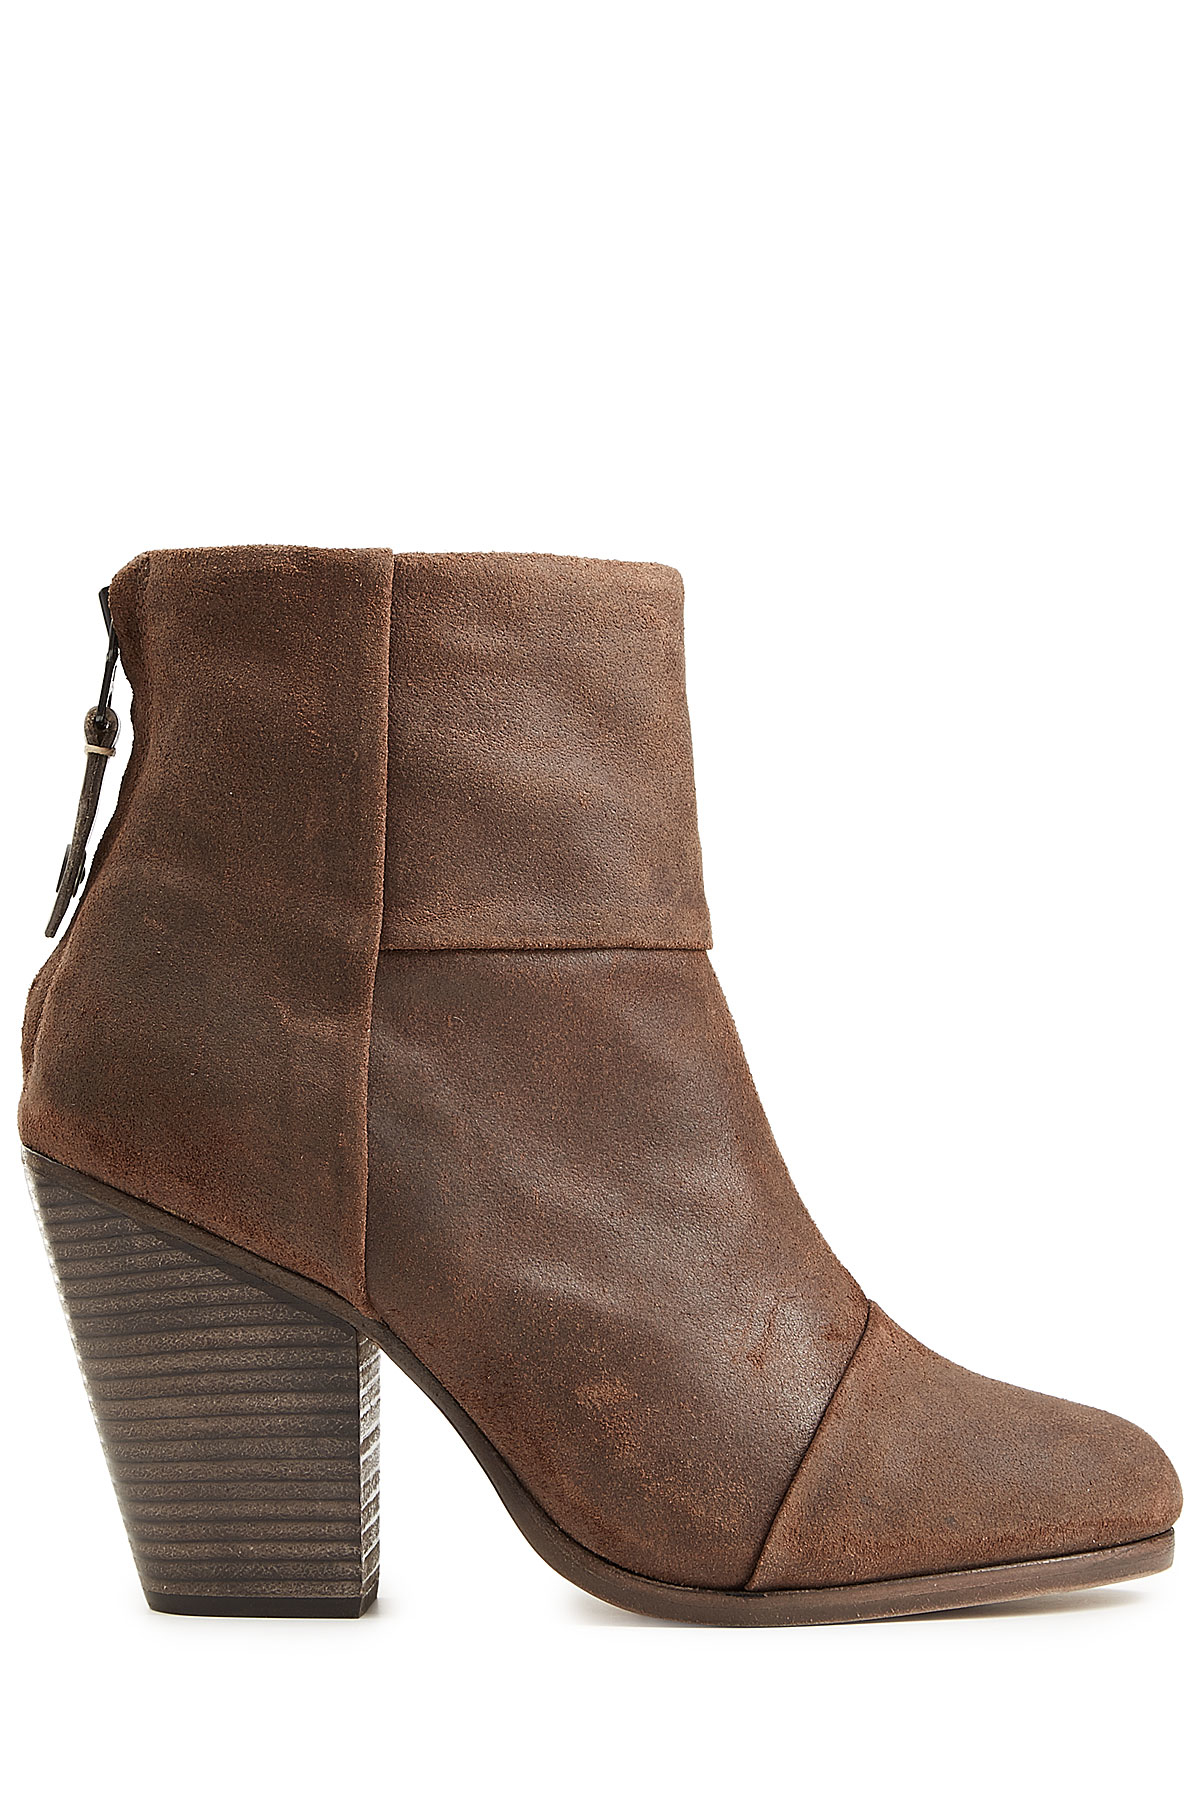 rag bone classic newbury suede ankle boots brown in